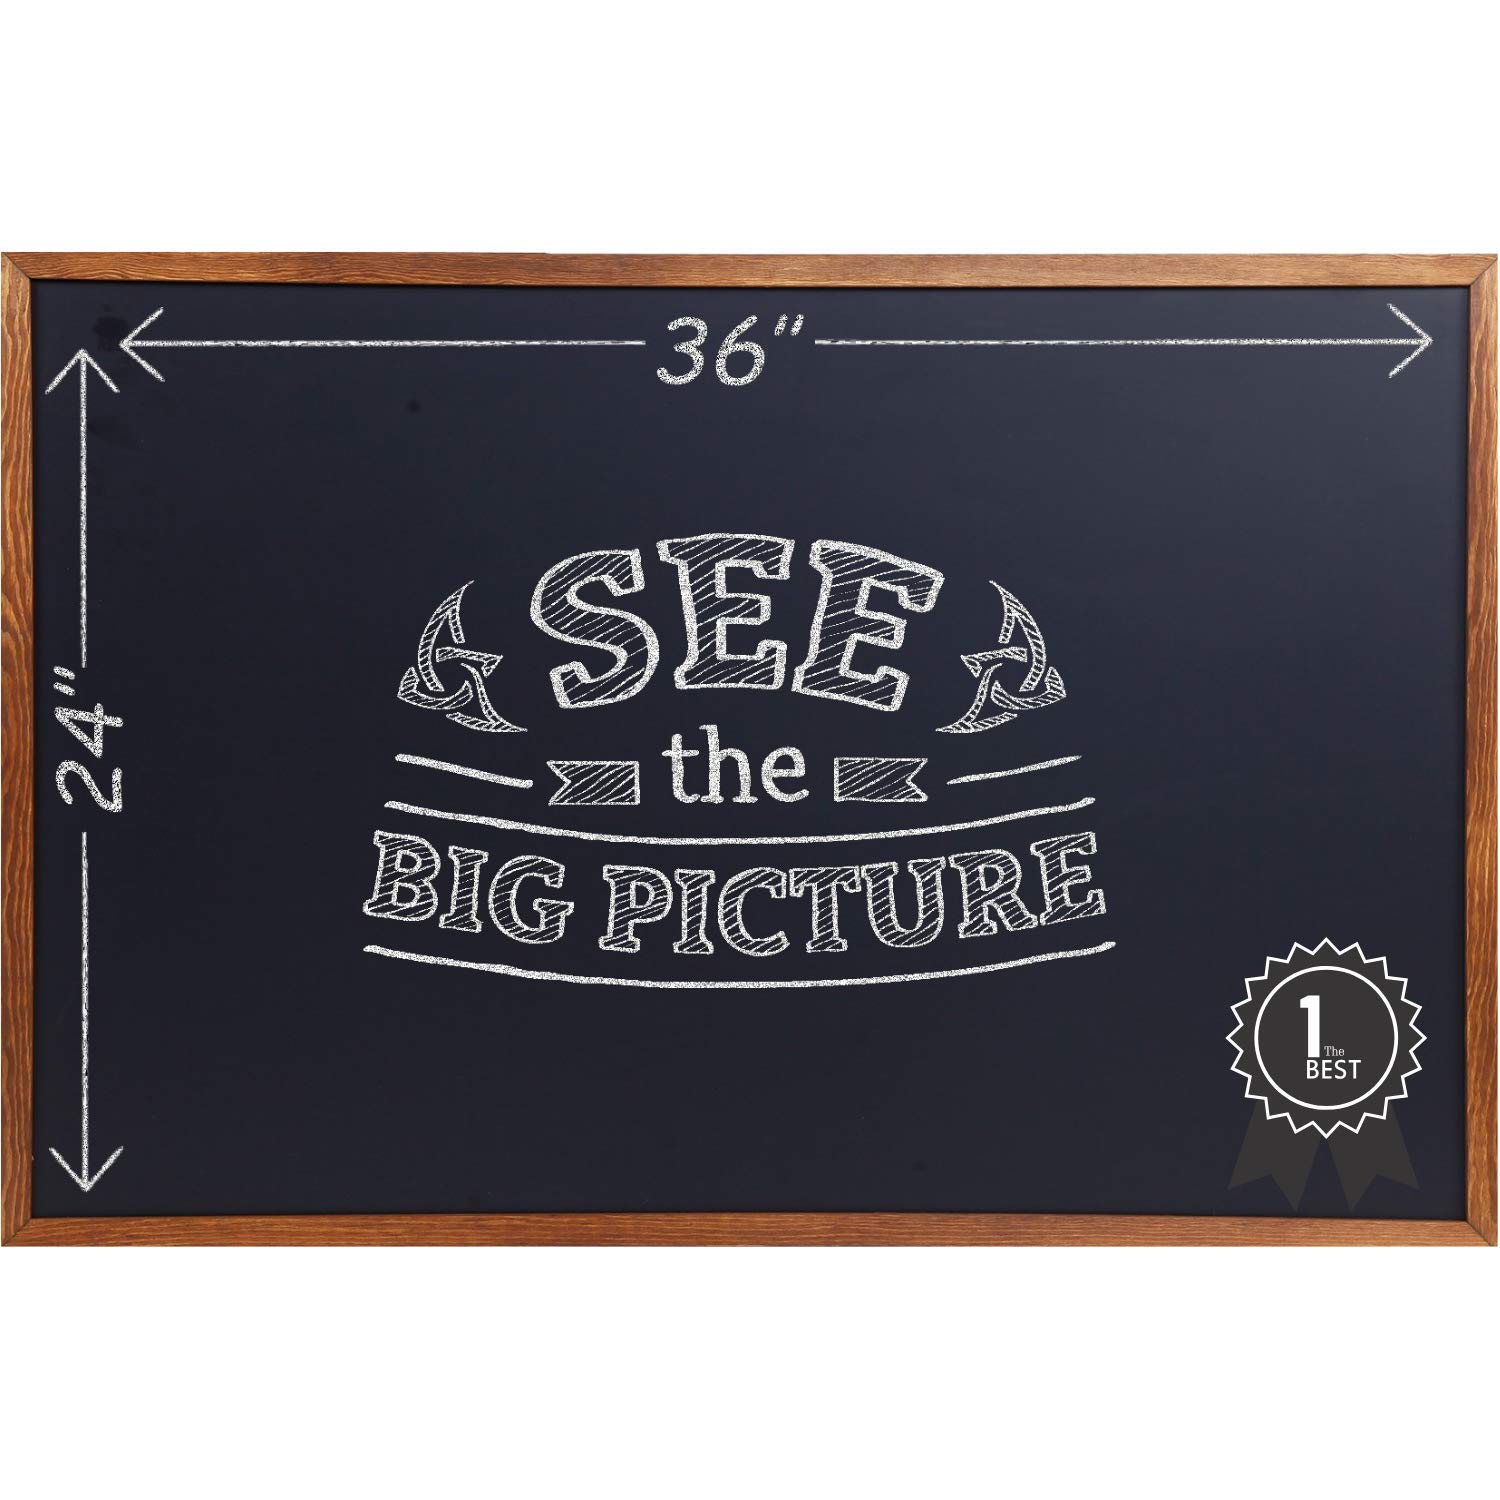 Wood Framed Chalkboard - Large Premium Magnetic 36 x 24 Rustic Chalk Board, Great with Regular or Liquid Chalk Markers, Nonporous Wall Hanging Blackboard Sign